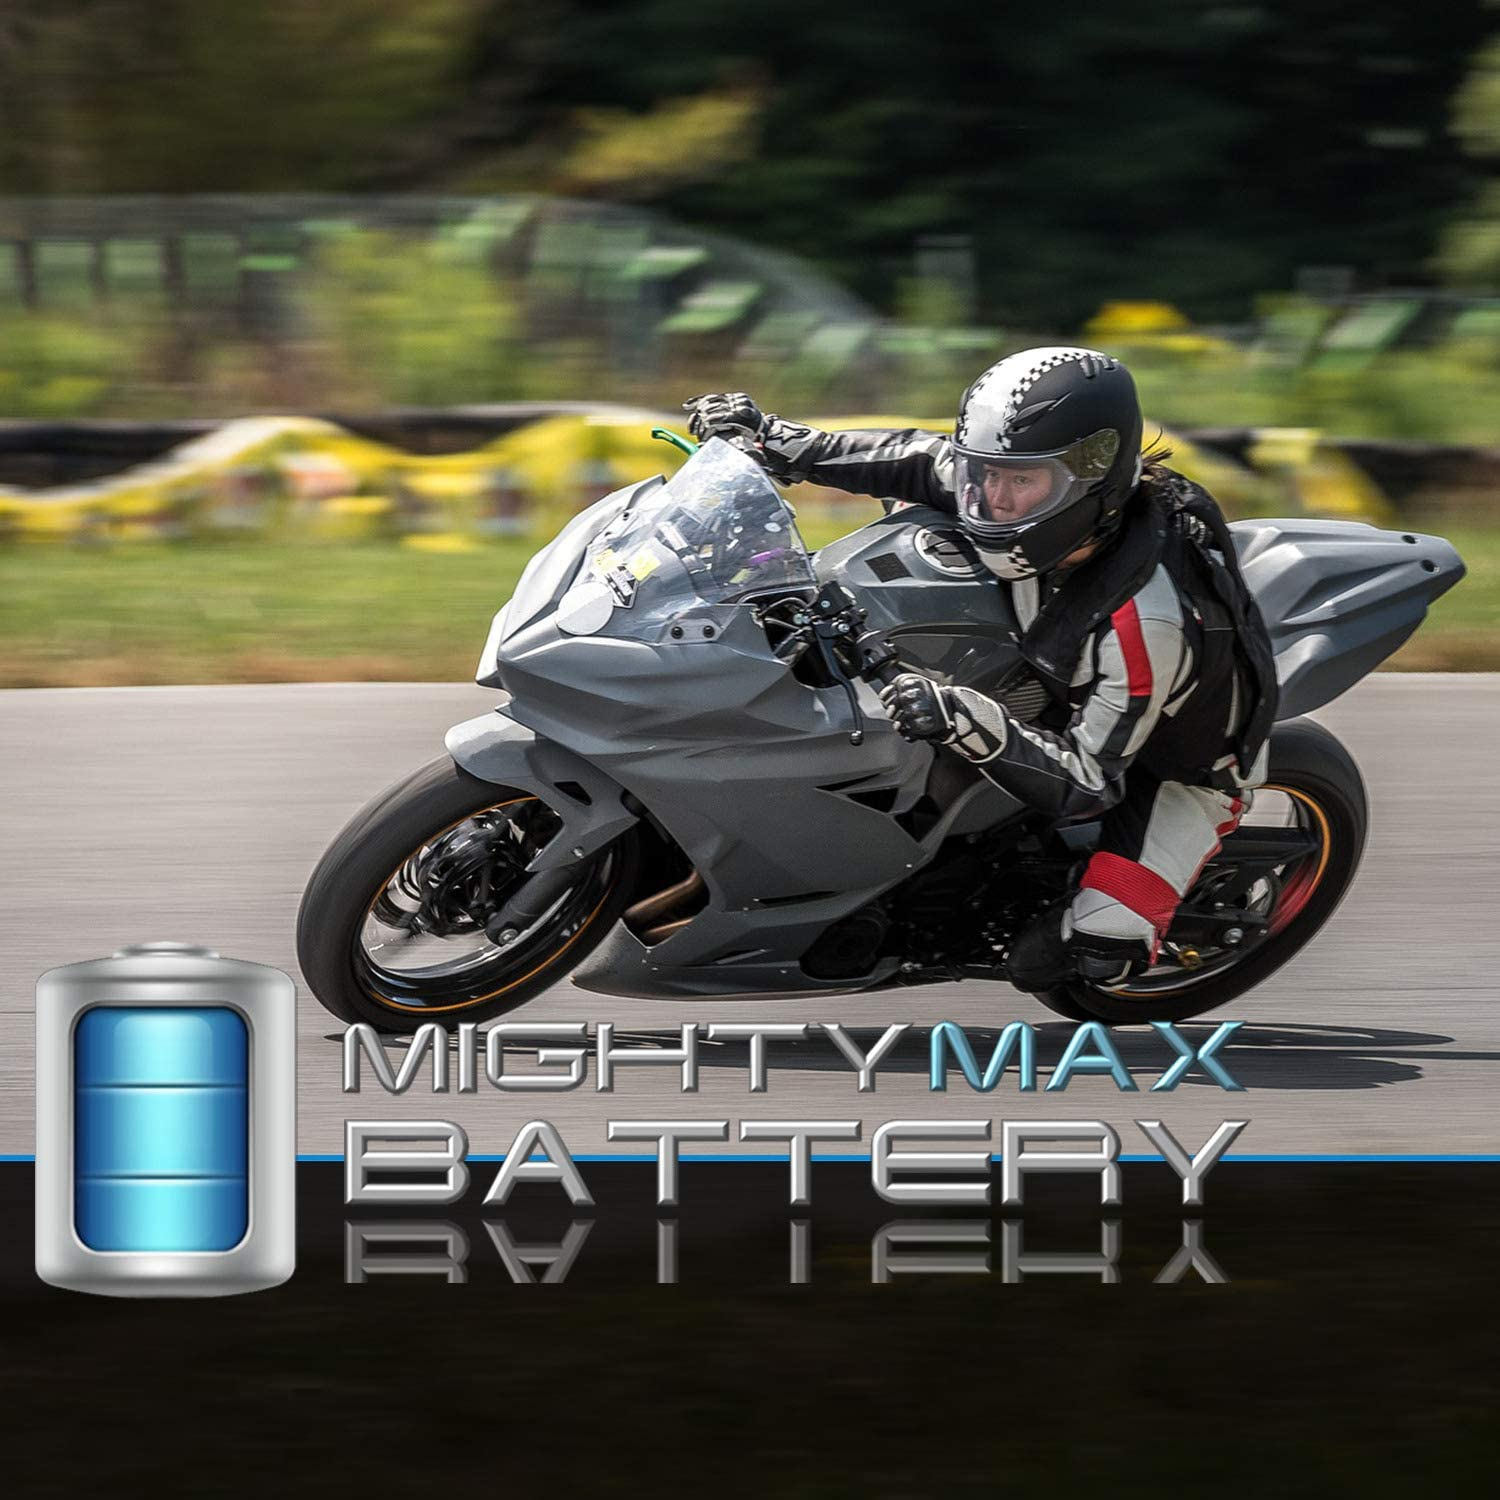 Mighty Max Battery YTZ7S Lithium Battery Replaces Arctic Cat 90 Alterra 90 2017-2020 Brand Product